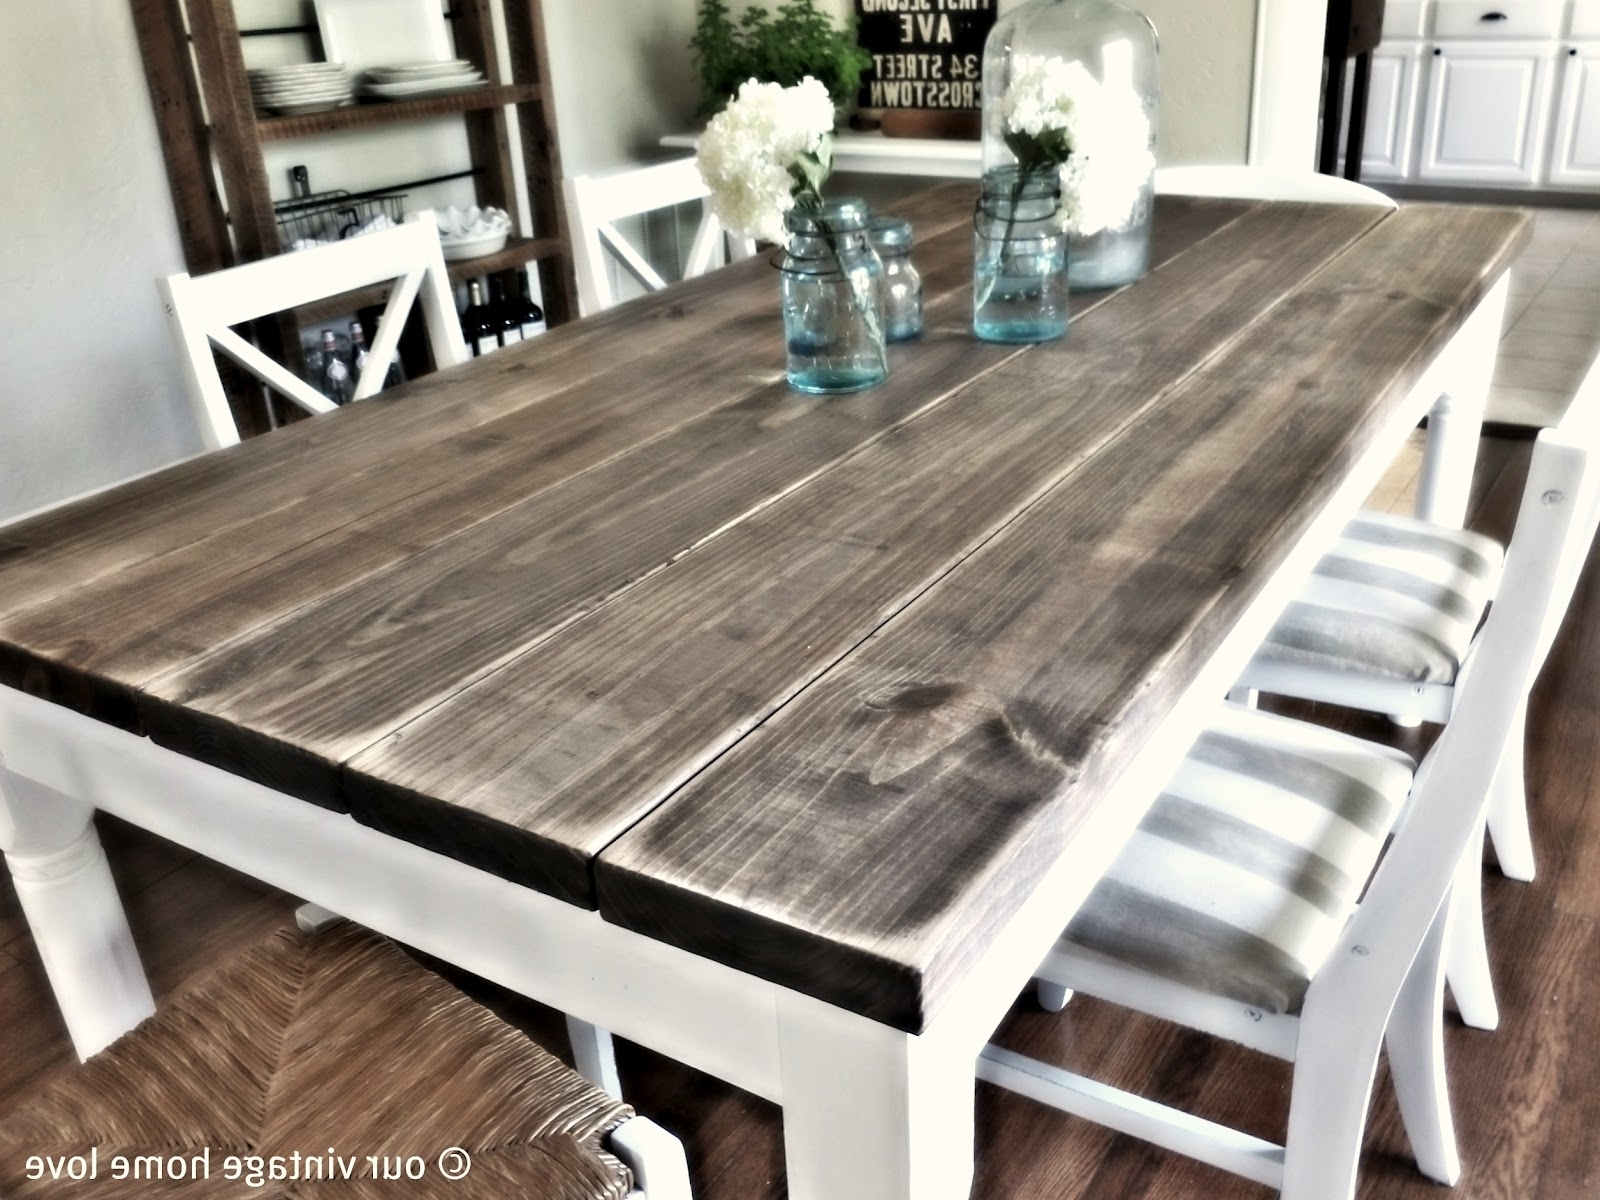 Popular Vintage Home Love: Dining Room Table Tutorial Intended For Dining Room Tables (View 4 of 25)